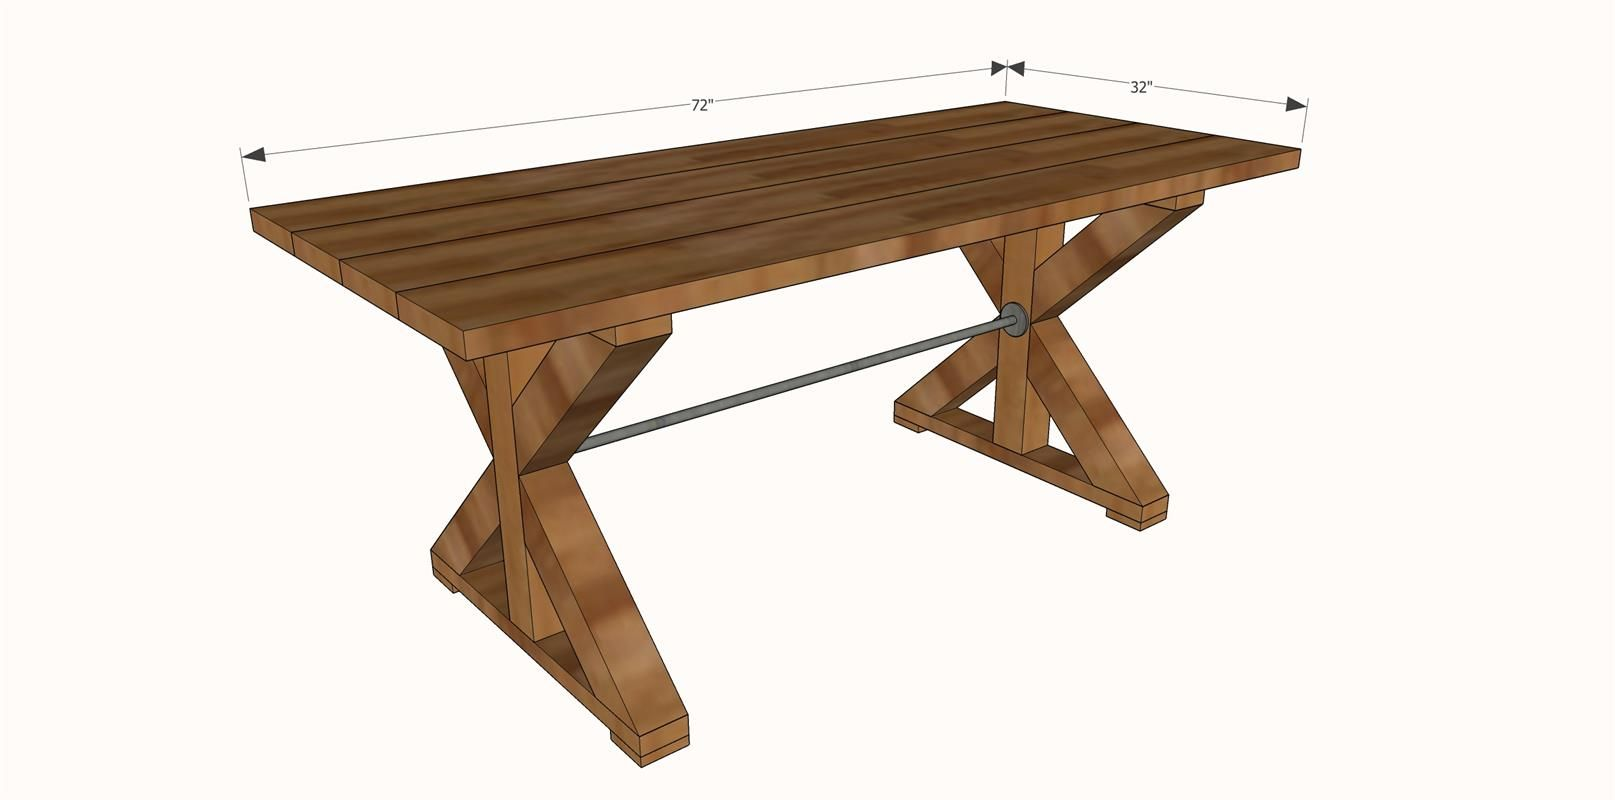 Farmhouse x table. I wouldn't have a pipe in the middle